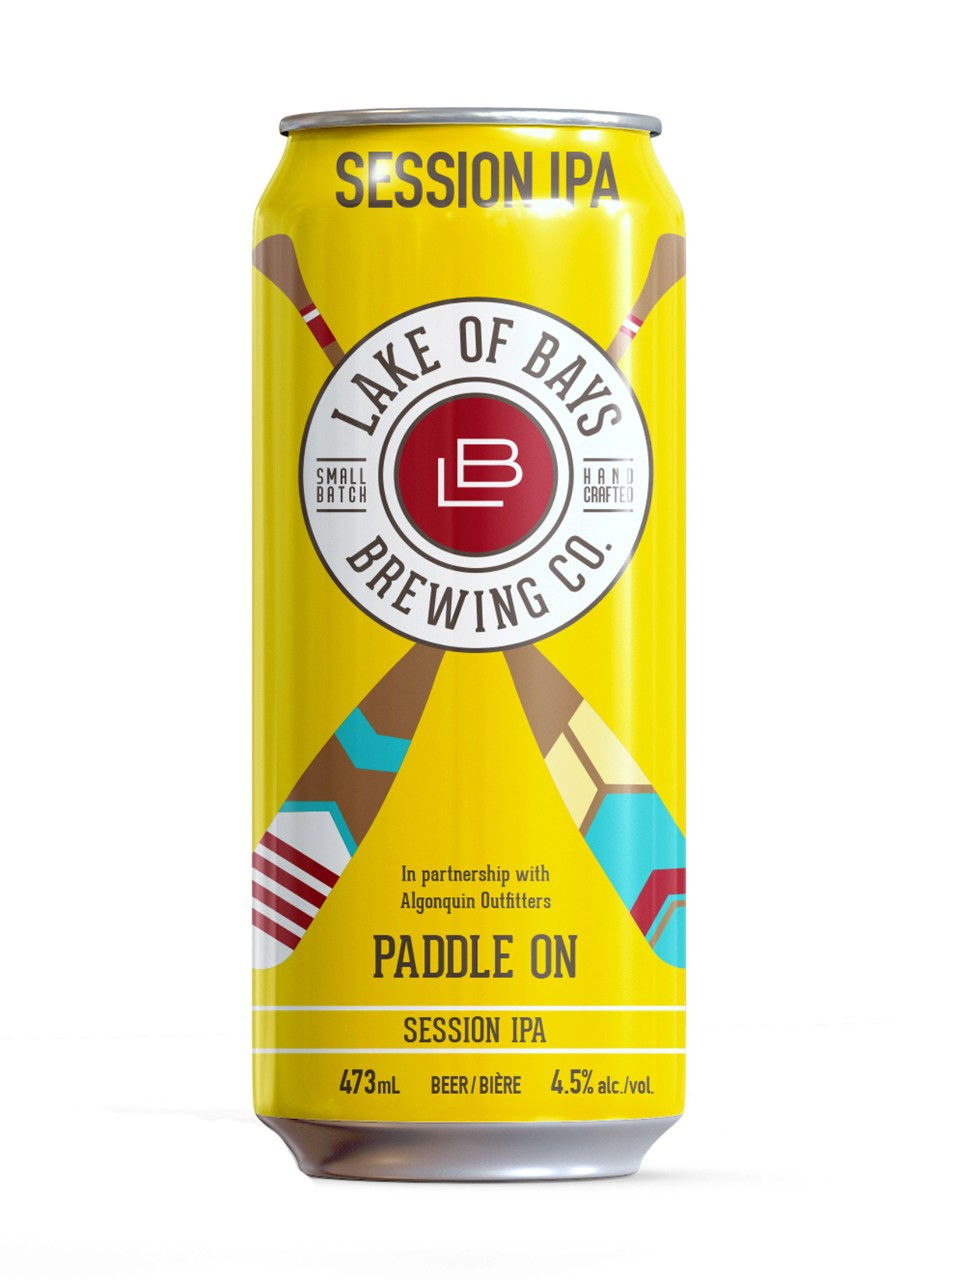 Lake Of Bays Paddle On Session IPA from LCBO